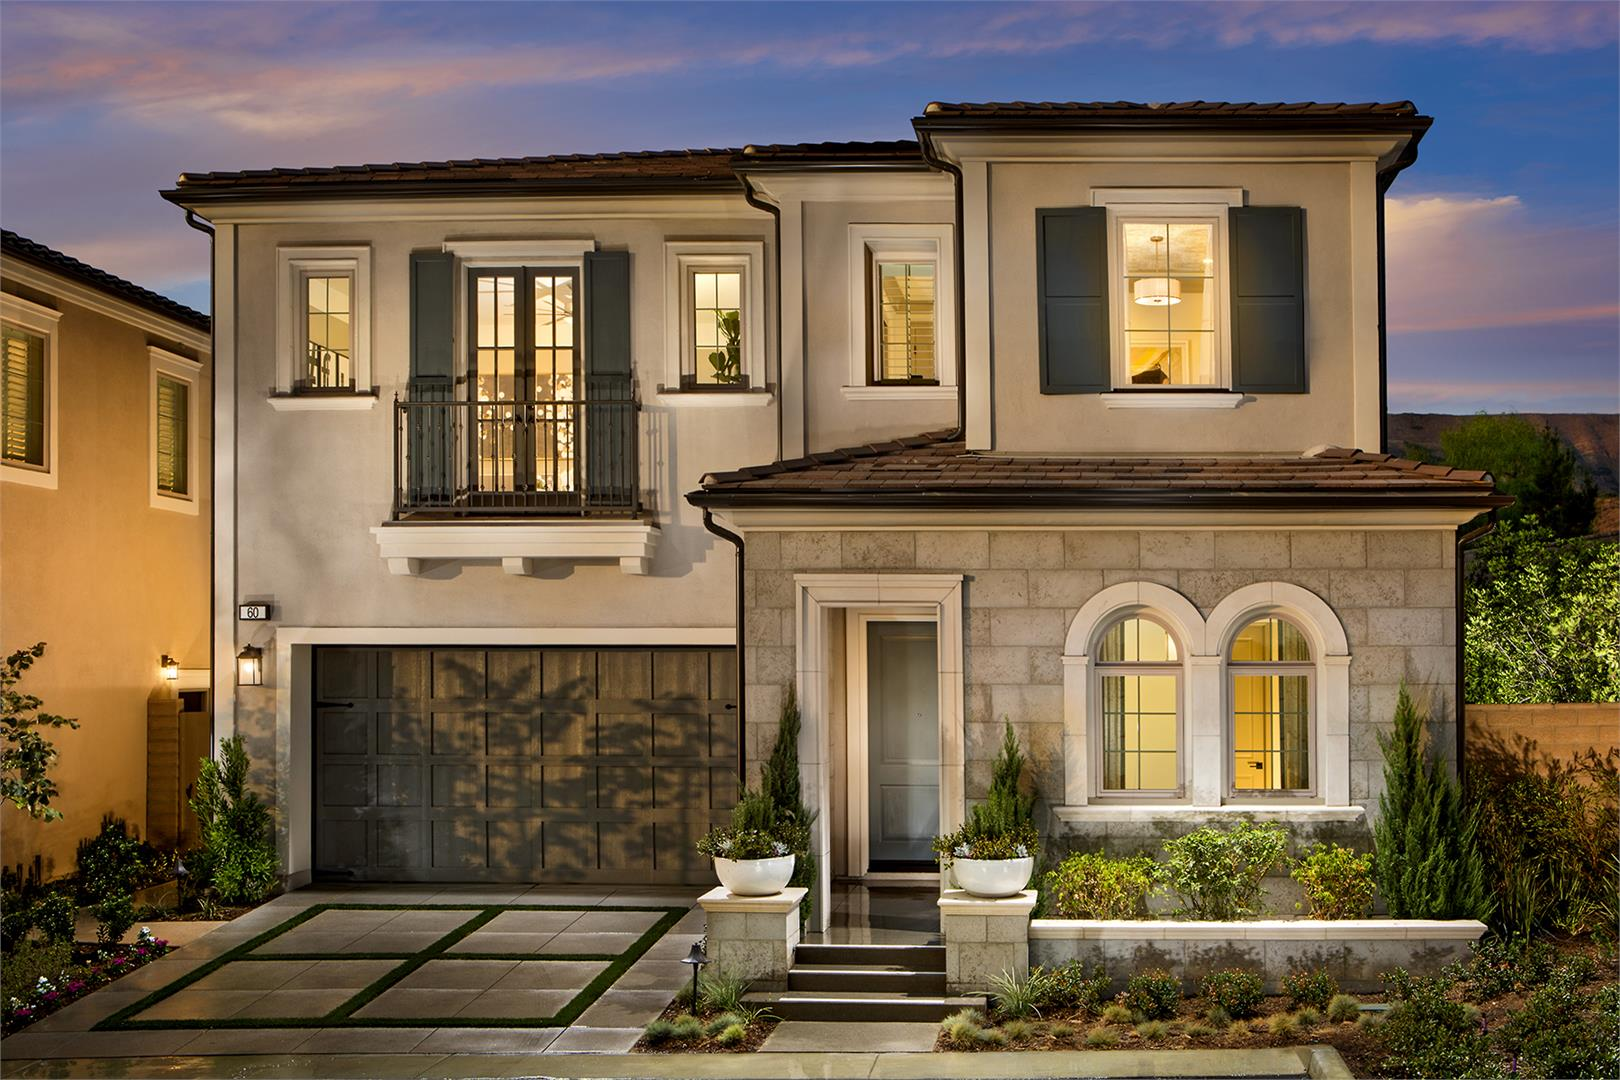 Padova At Orchard Hills In Irvine Ca Prices Plans Availability